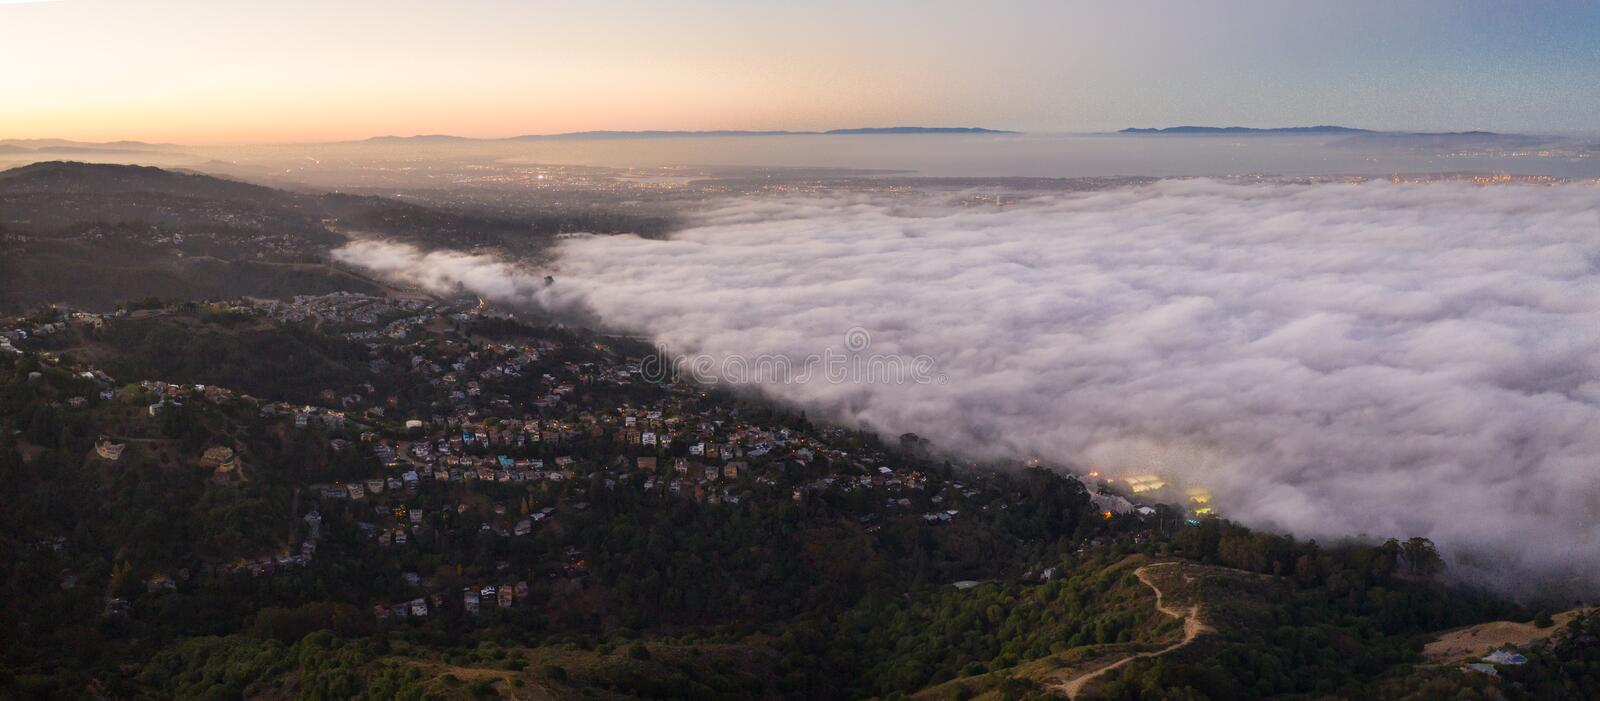 Aerial View of Marine Layer Flowing Over San Francisco Bay Area. The ever-present offshore marine layer in California is propelled inland in the San Francisco royalty free stock photo